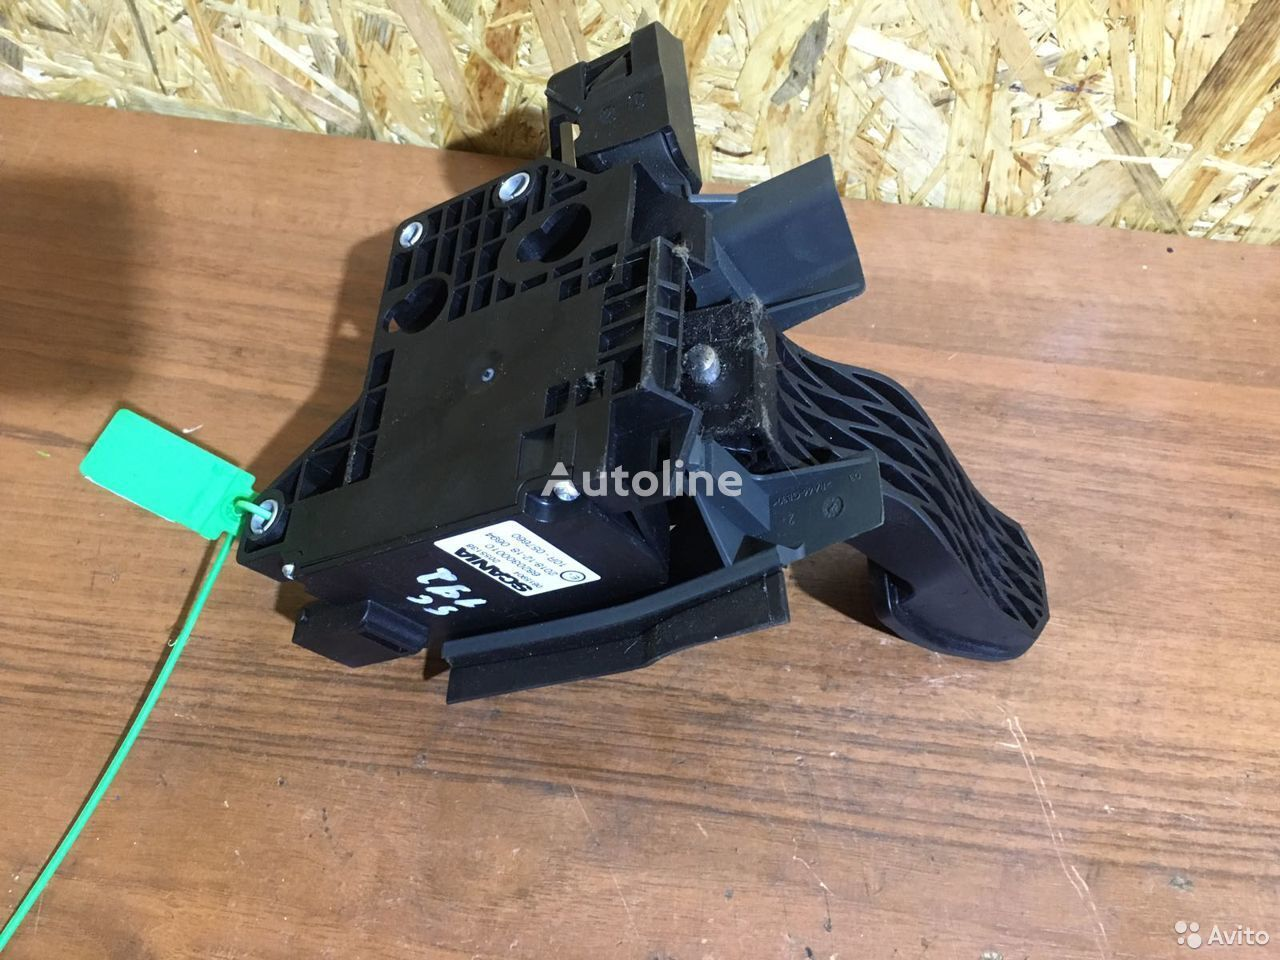 (2055138) accelerator pedal for SCANIA 2019 god tractor unit